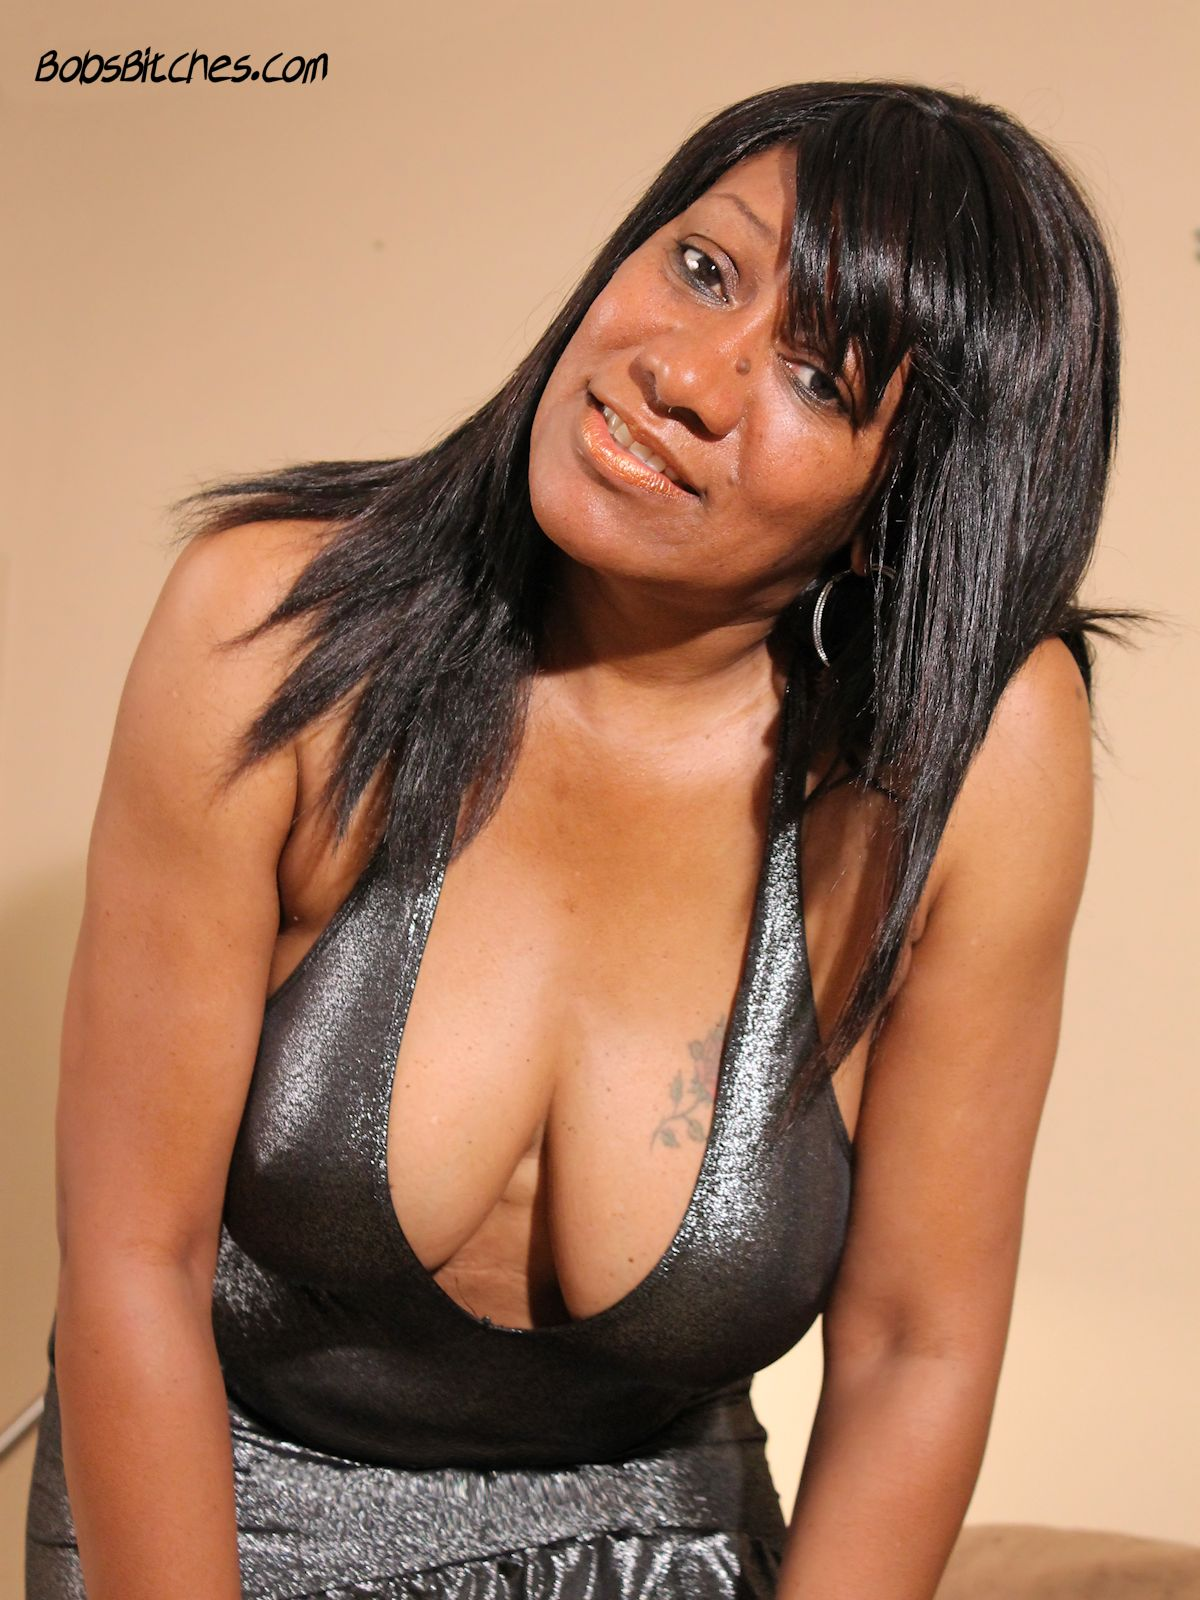 Ebony mother and milf reveals her big tits and cleavage.